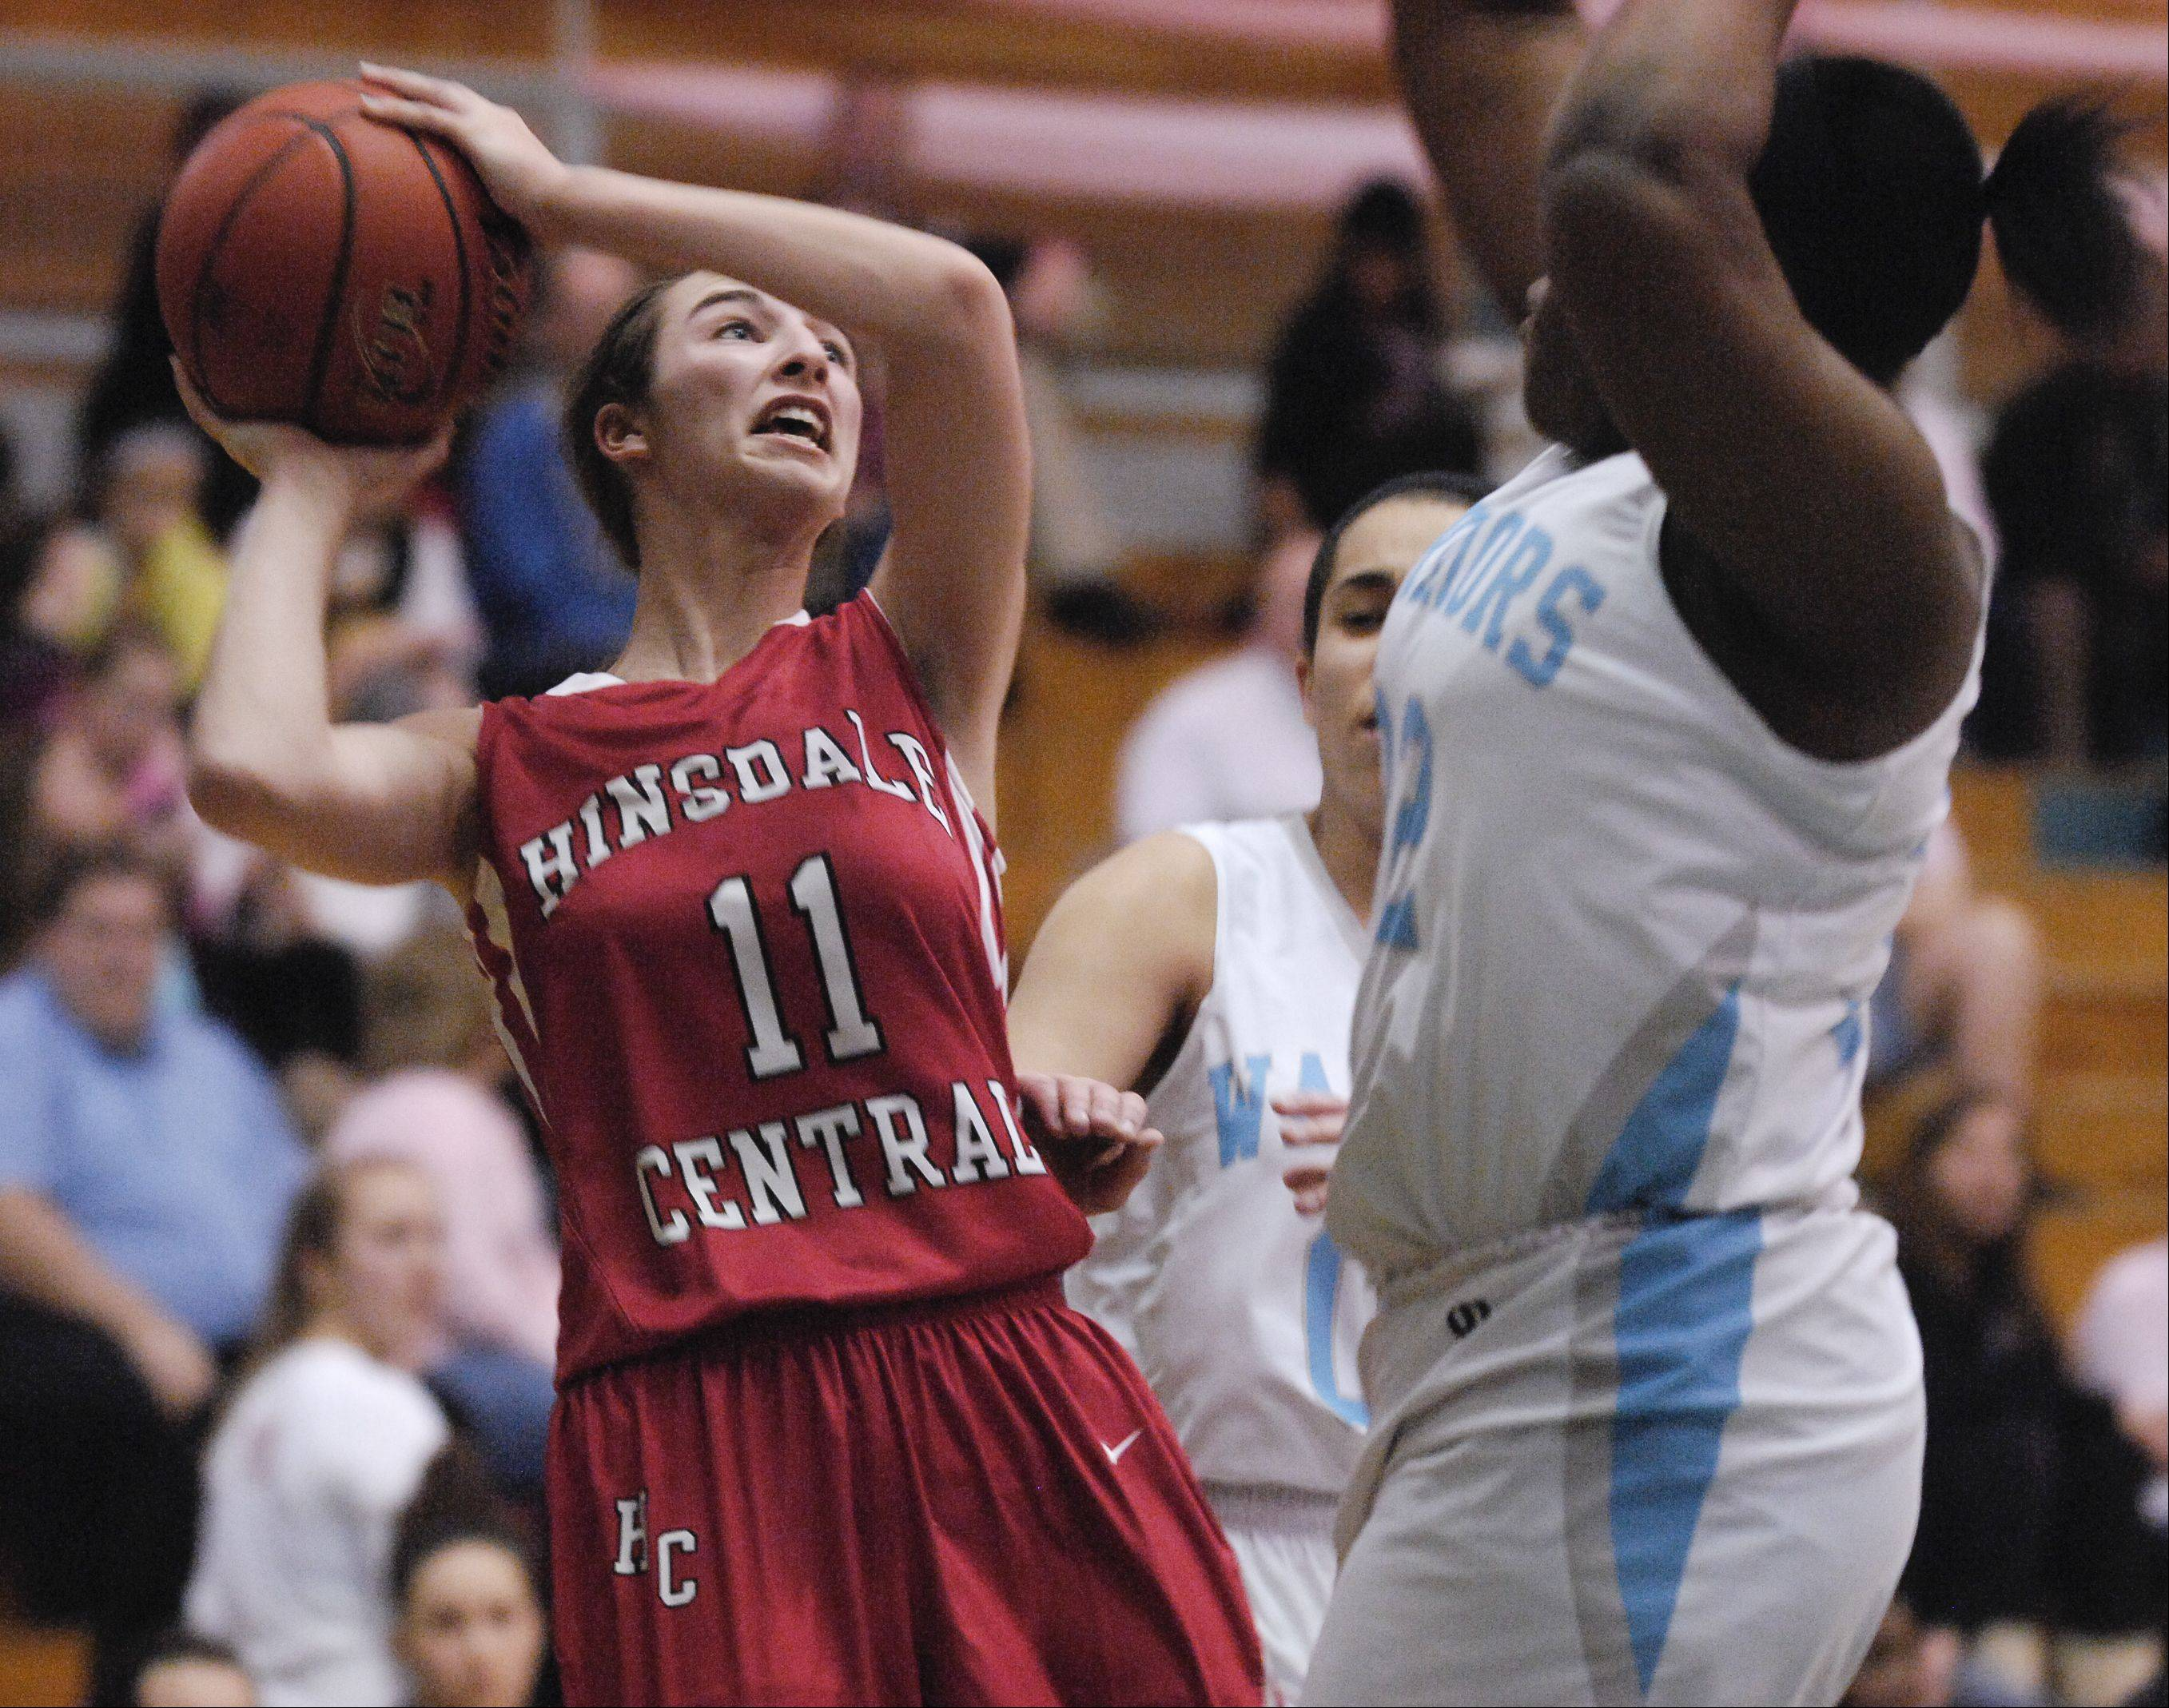 Maddie Roglich of Hinsdale Central battles Erma Udota of Willowbrook.